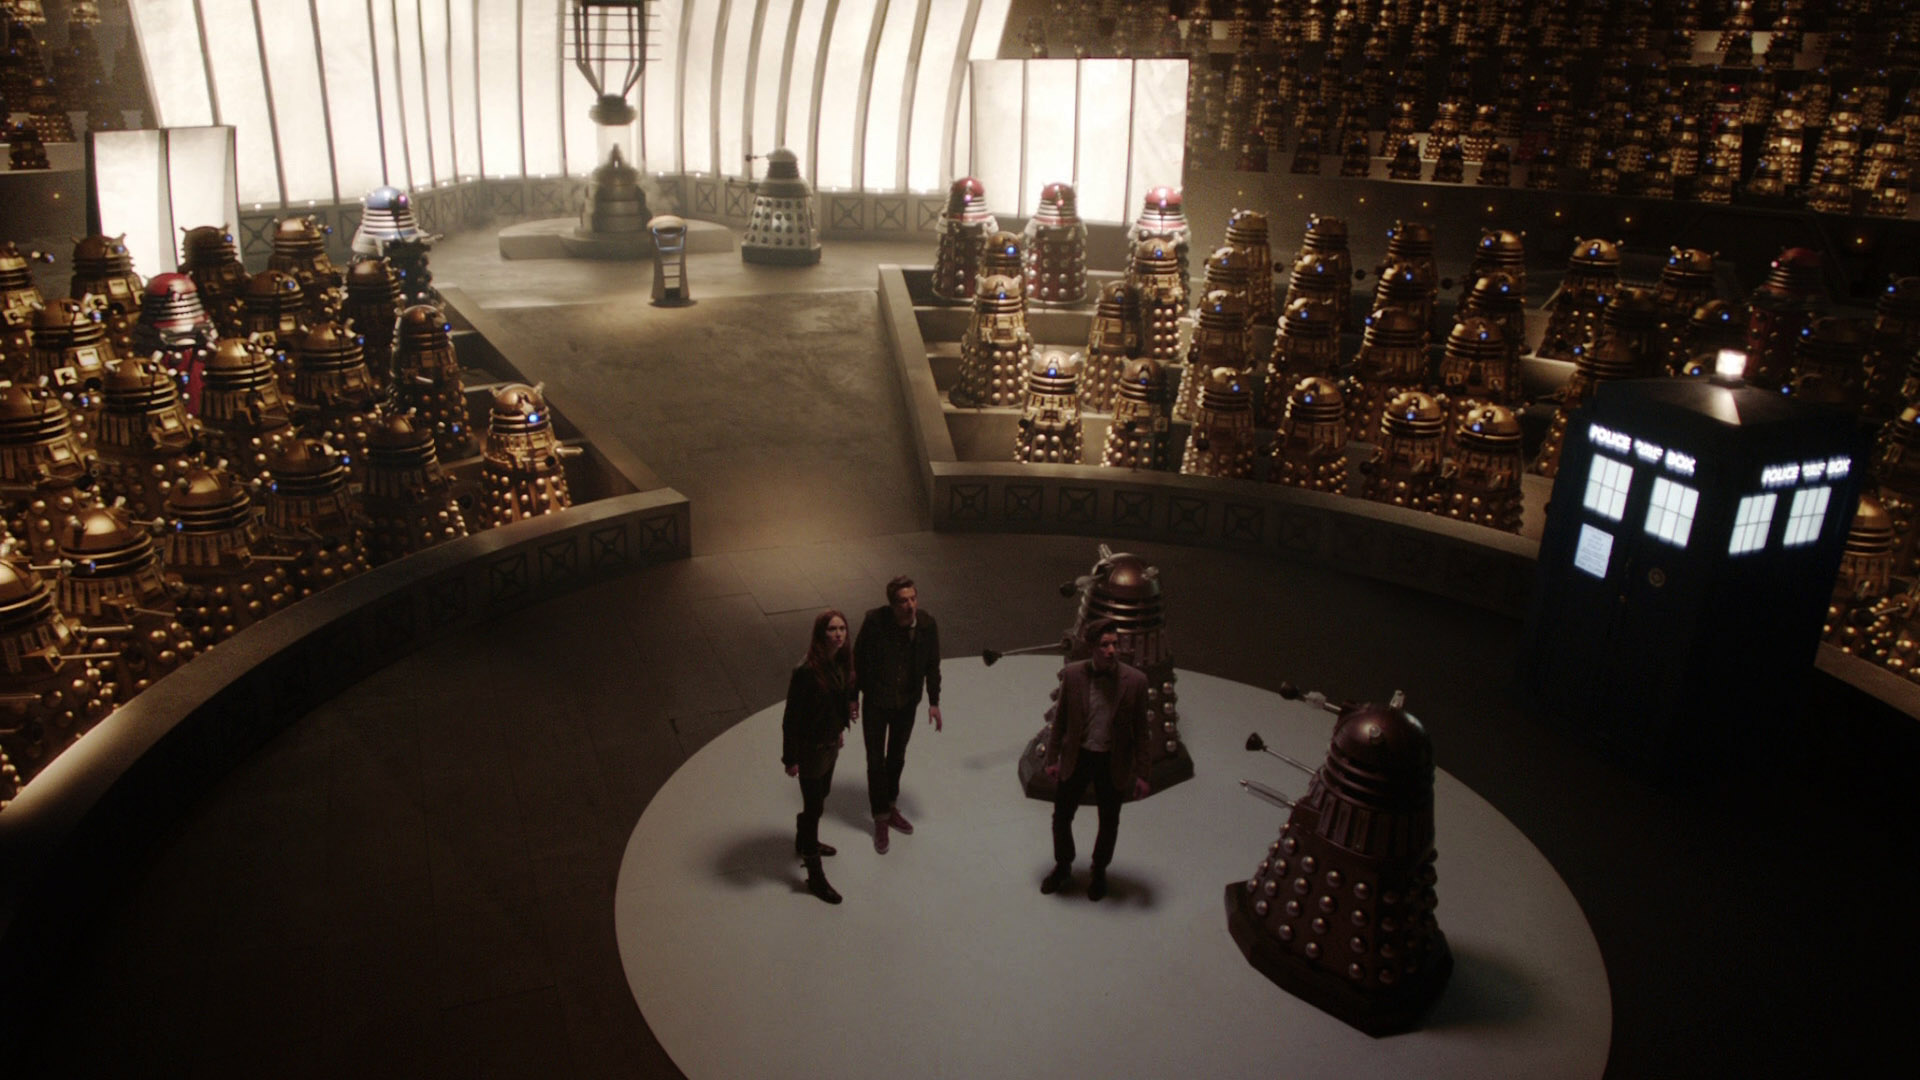 The Dalek Parliament